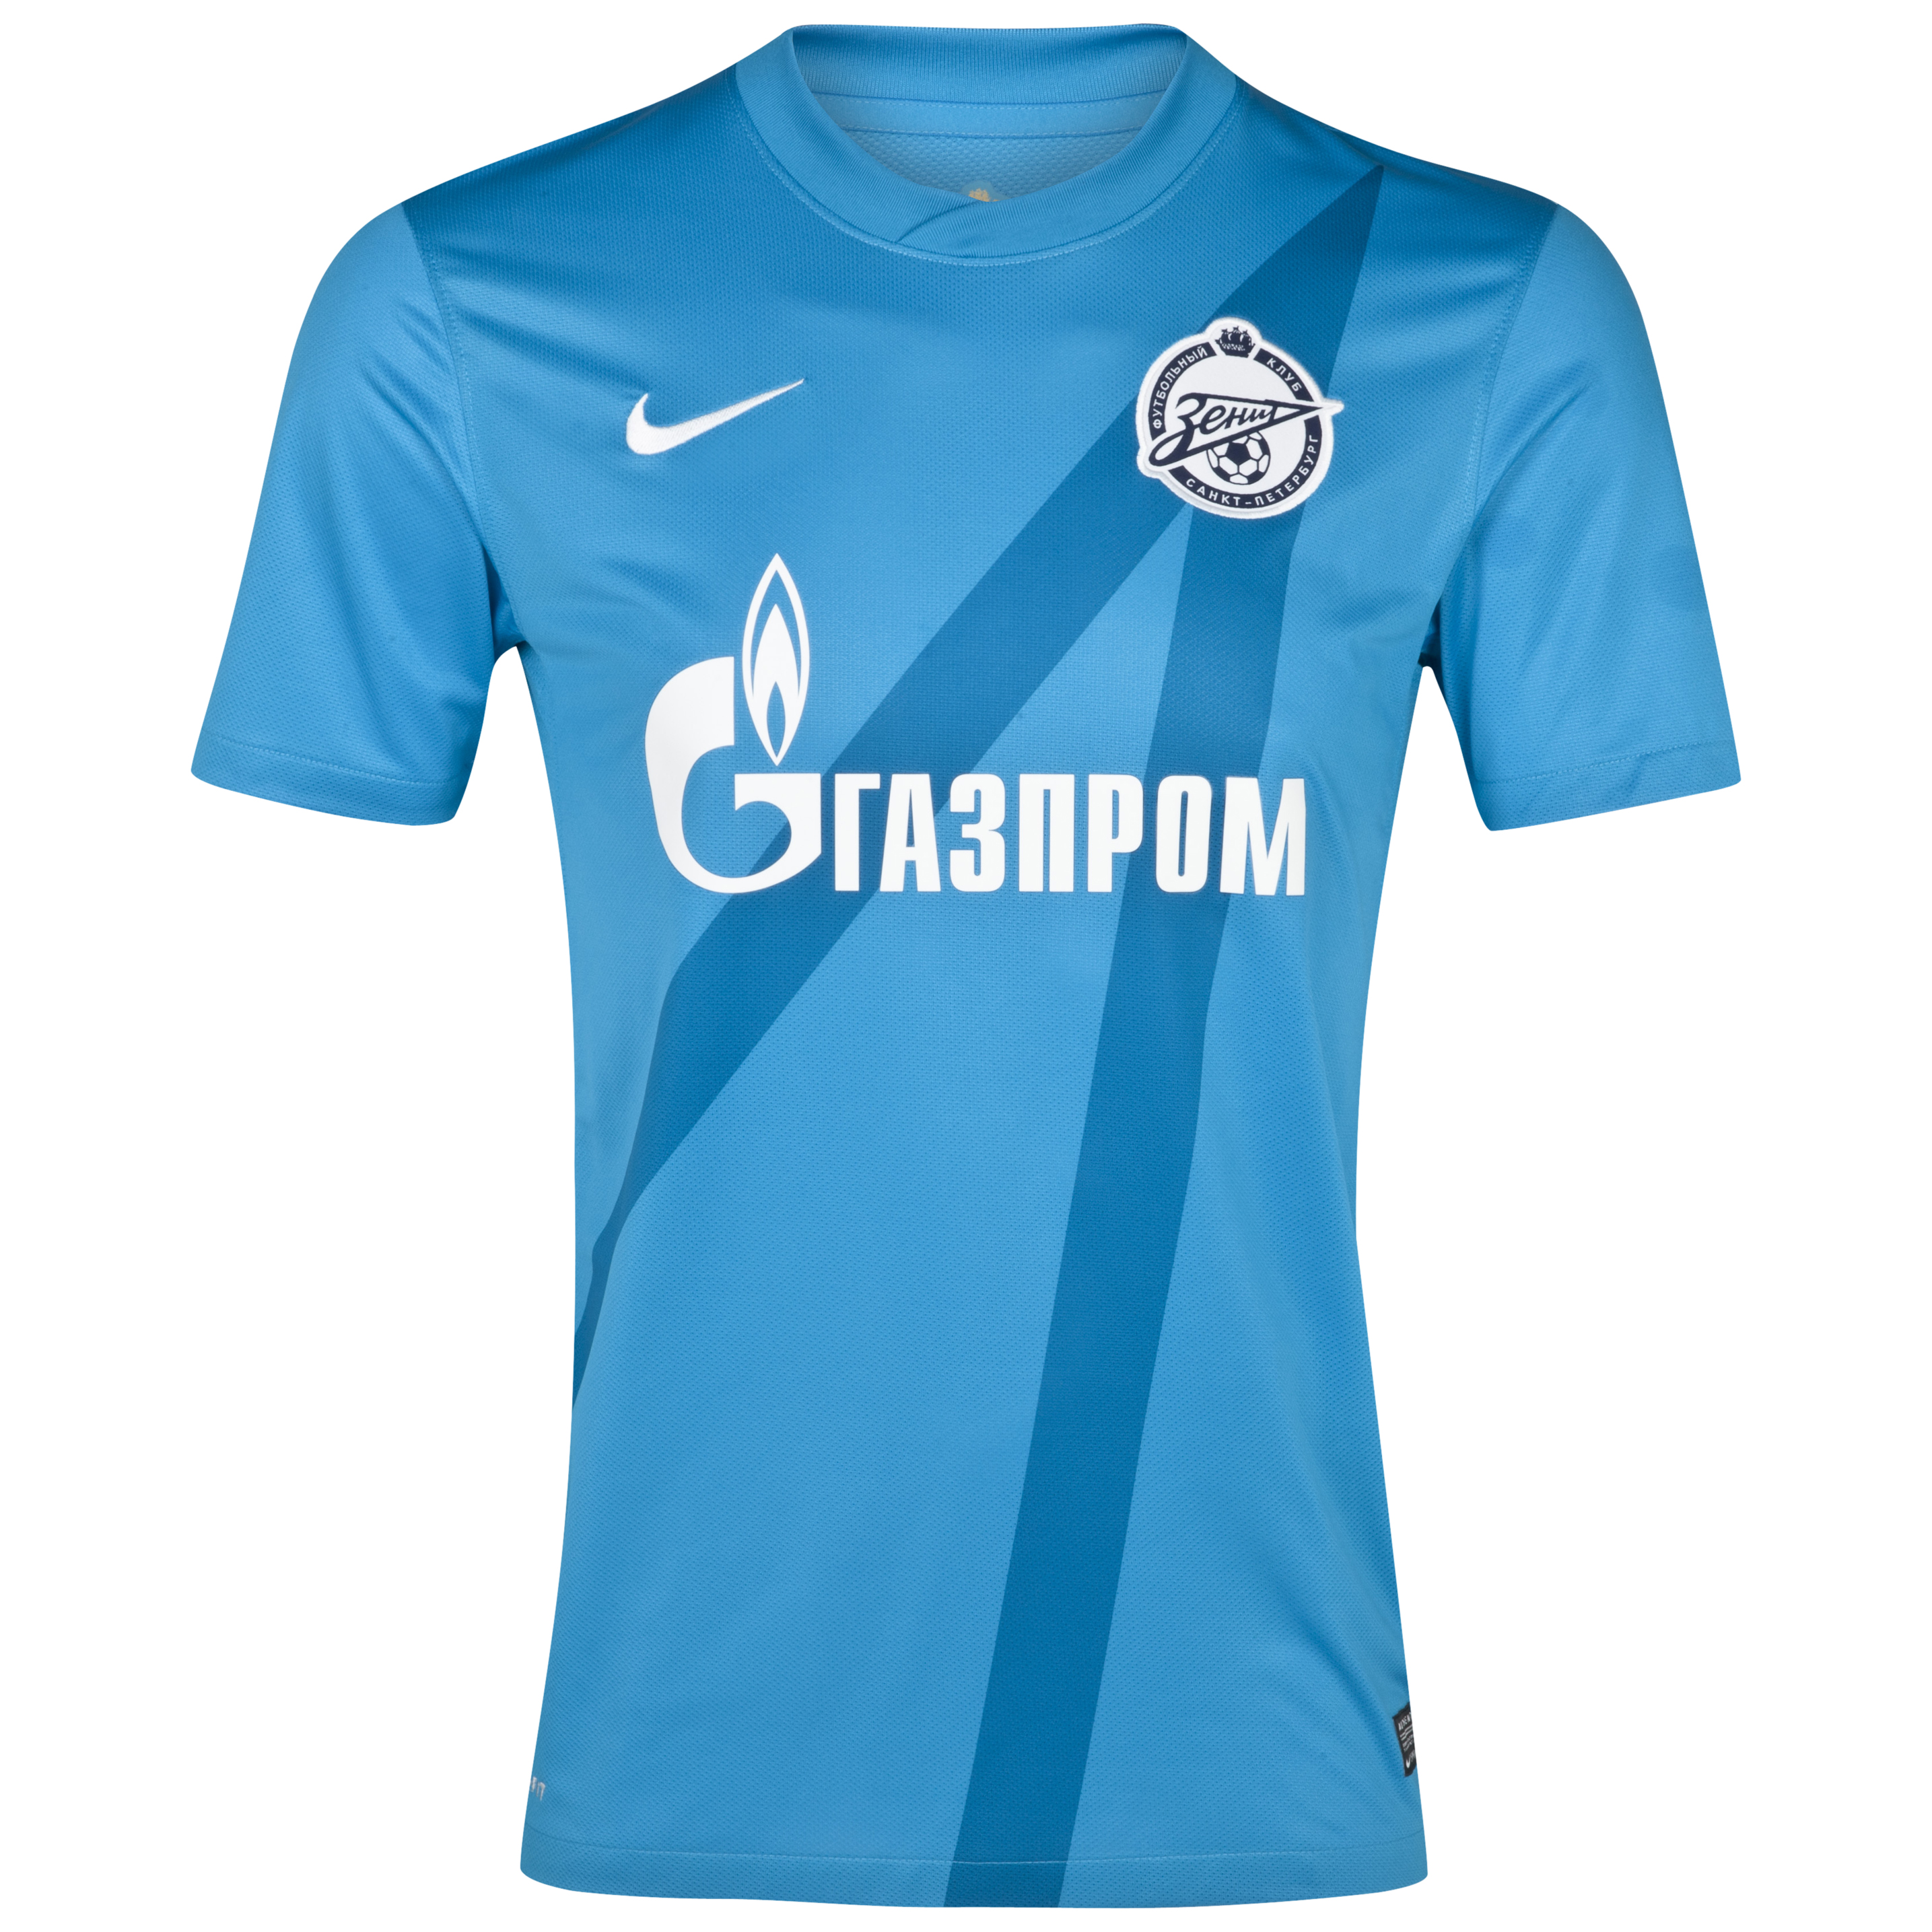 Zenit St. Petersburg 2012/13 Home Shirt